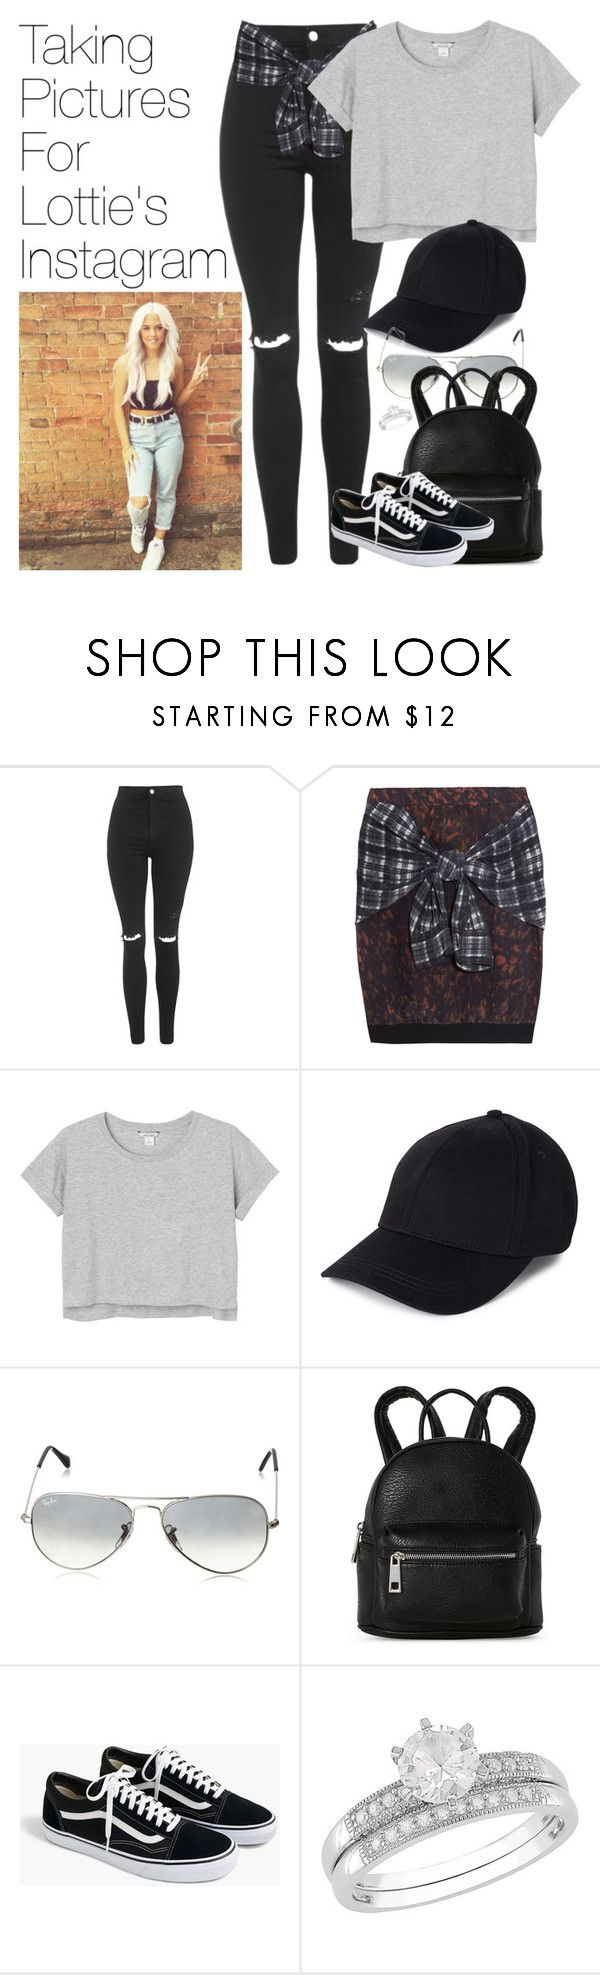 """""""Taking Pictures for Lottie's Instagram"""" by onedirectionimagineoutfits99 ❤ liked on Polyvore featuring Topshop, 3.1 Phillip Lim, Monki, Ray-Ban, Street Level and J.Crew"""